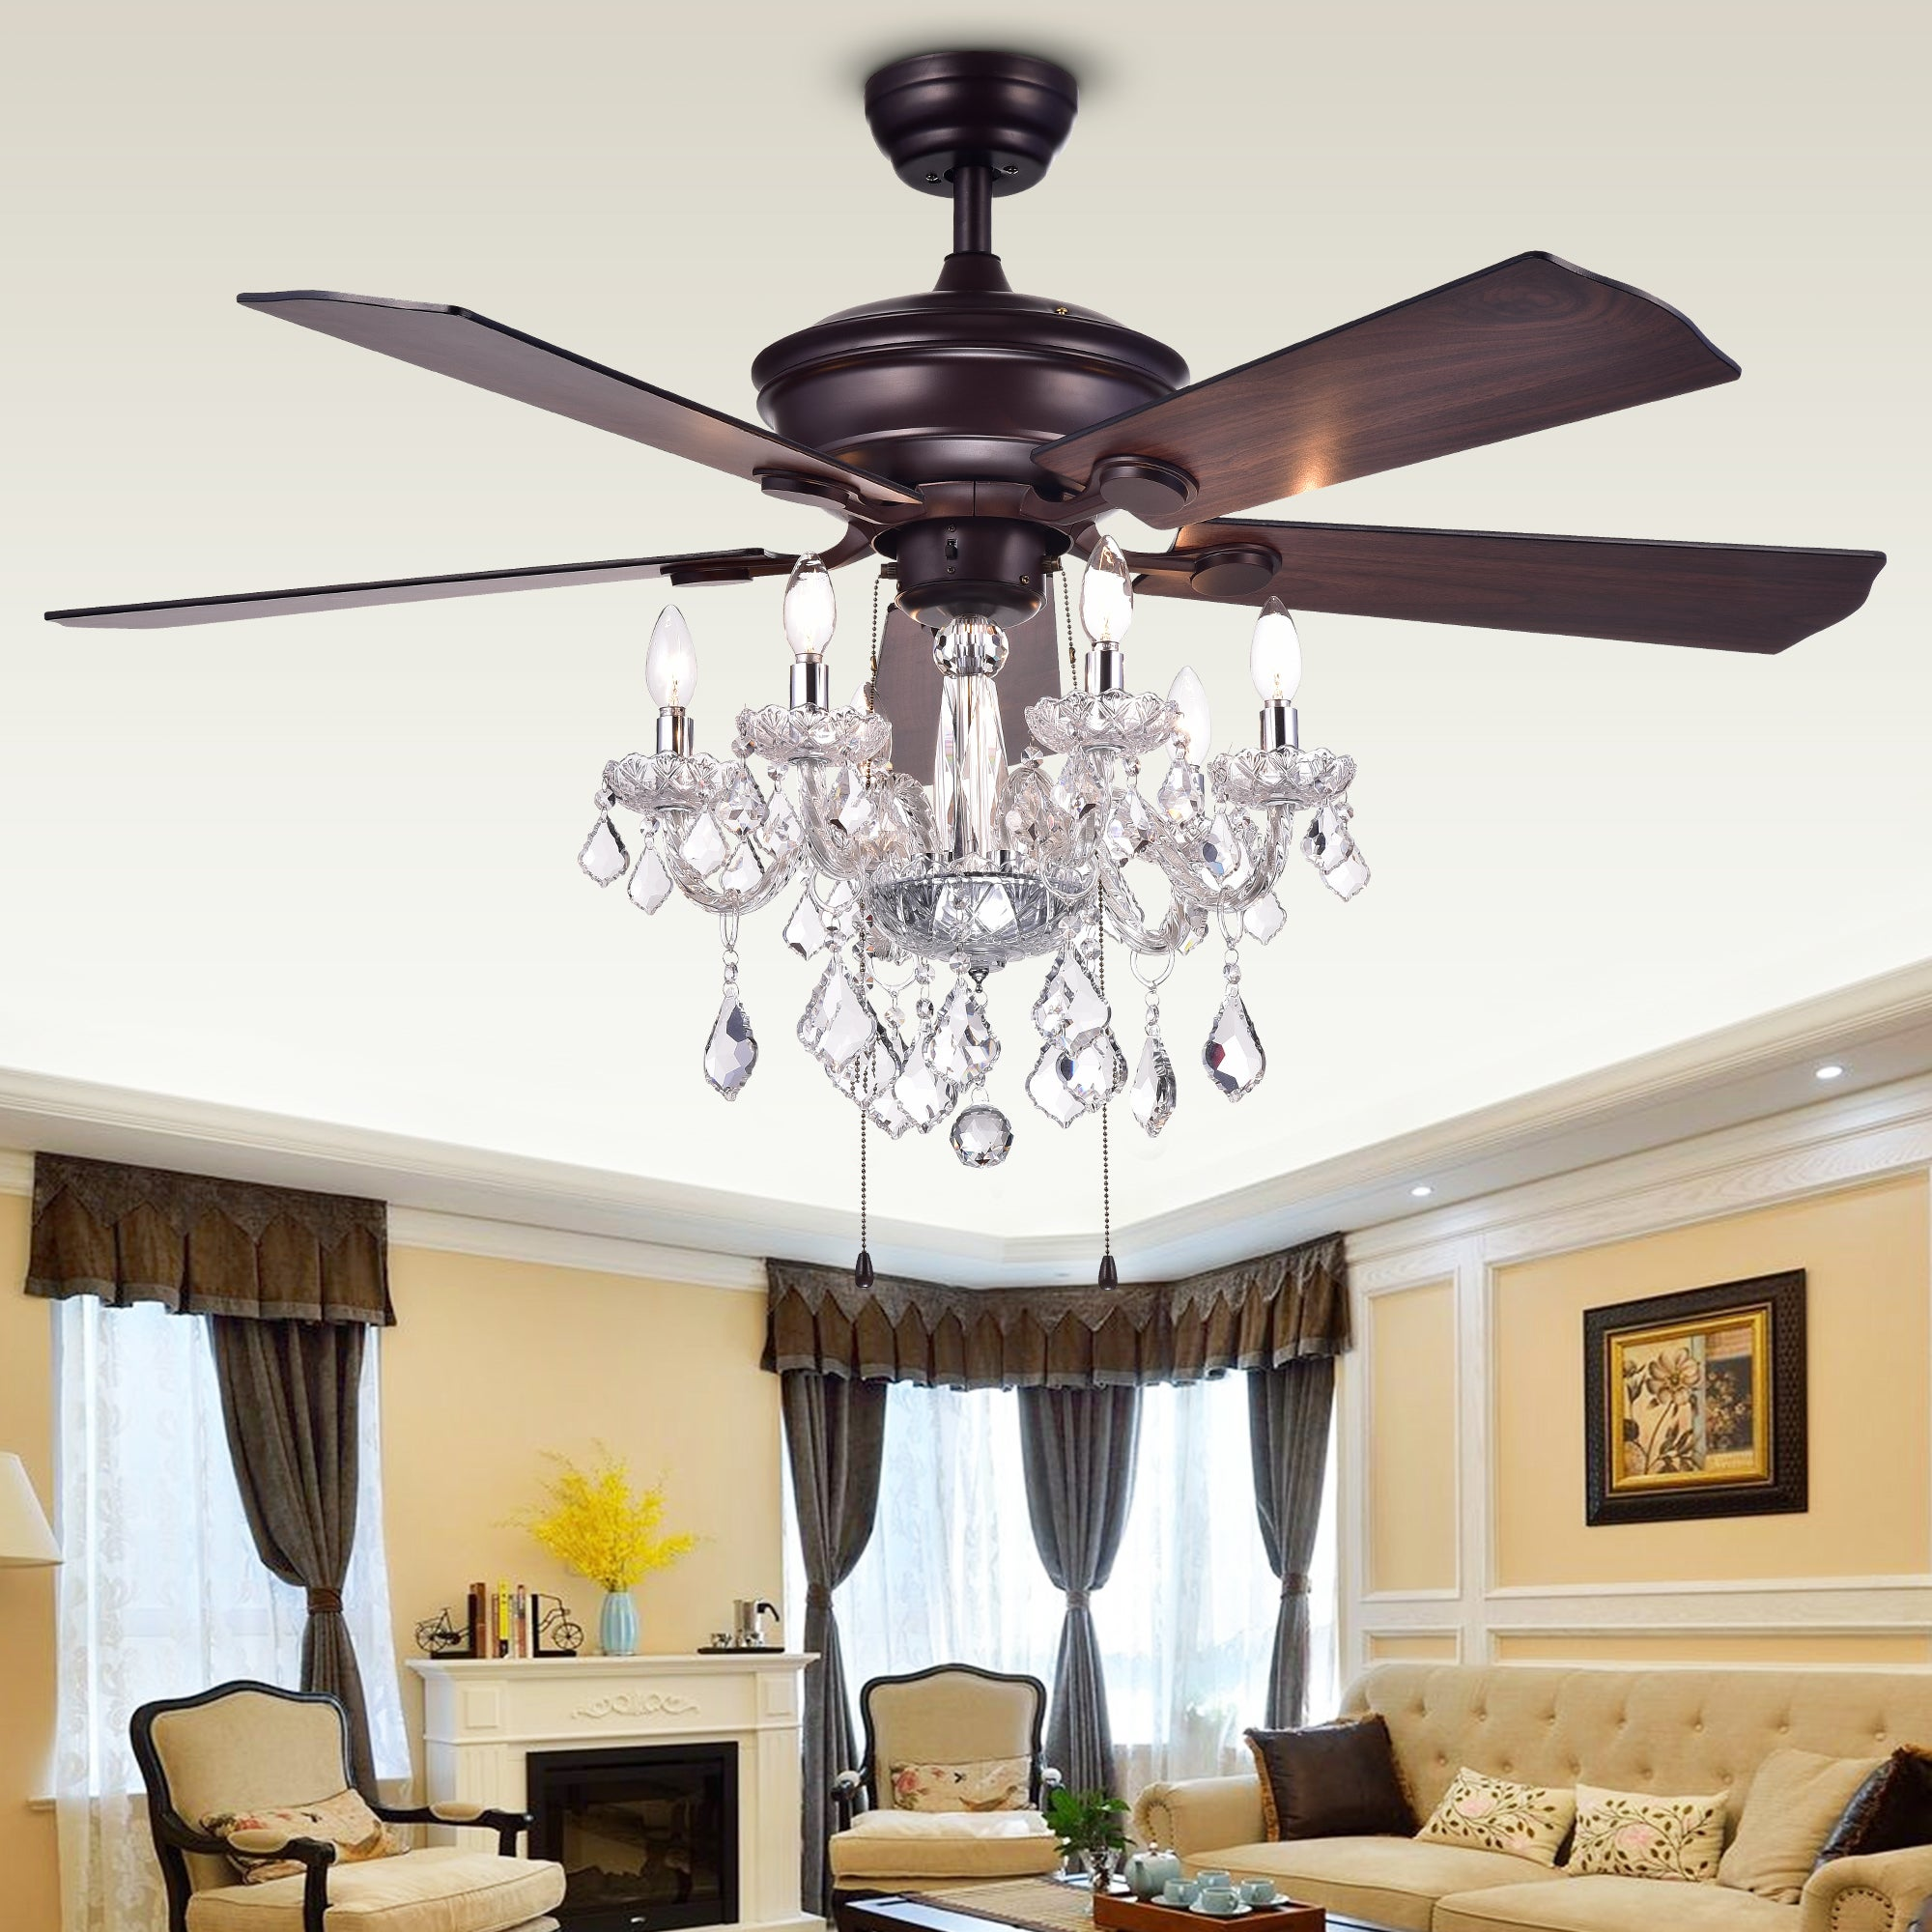 Warehouse of Tiffany Havorand 52 inch 5 blade Ceiling Fan with